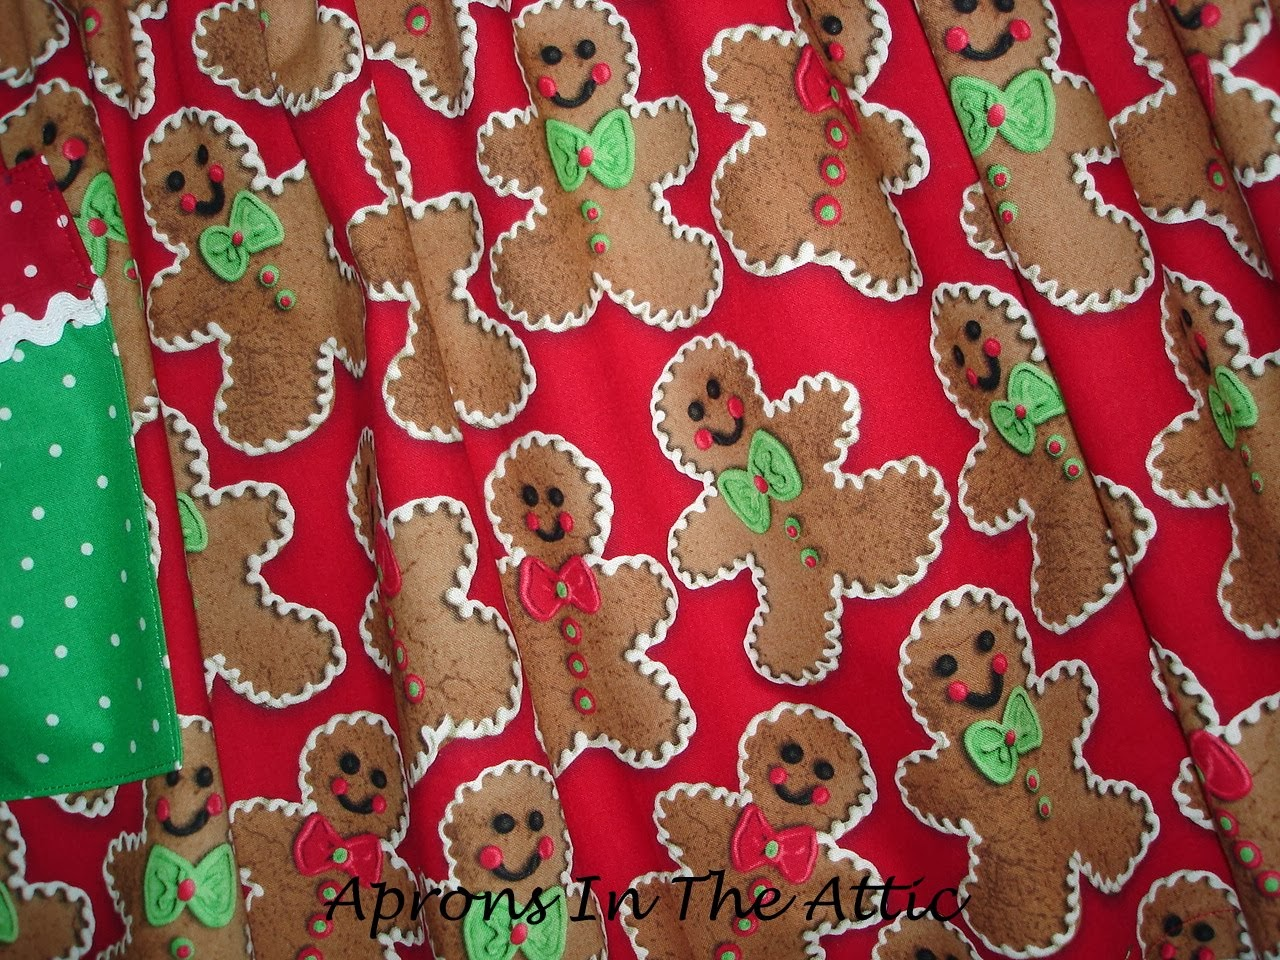 White apron hobby lobby - I Fell In Love With This Gingerbread Print When I Saw It At Hobby Lobby And Thought It Would Work Well With Lori Holt S One Yard Apron